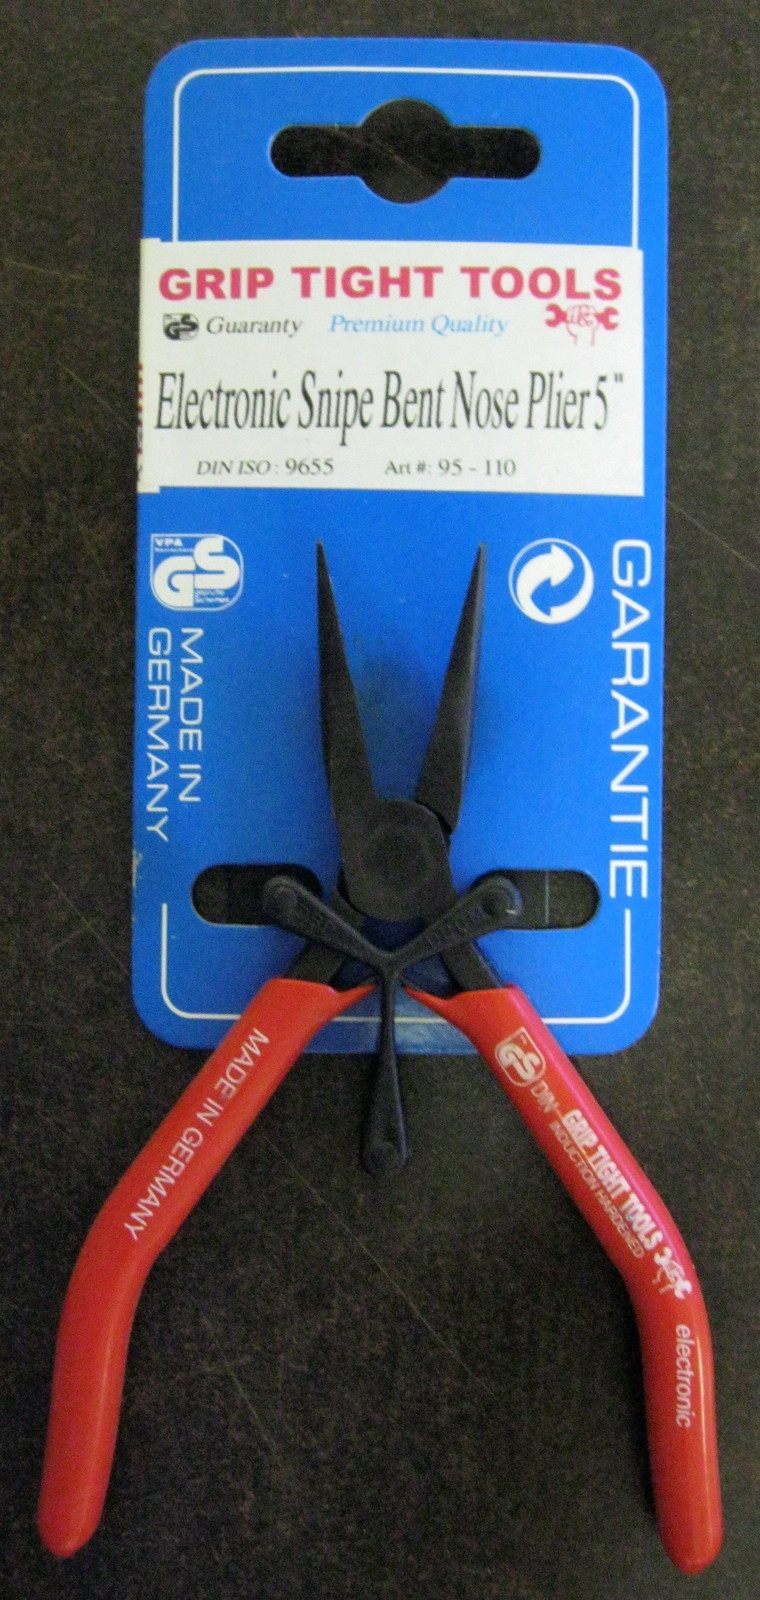 "New Grip Tight Tools 5"" Electronic Snipe Bent Nose Mini Plier #95-110"